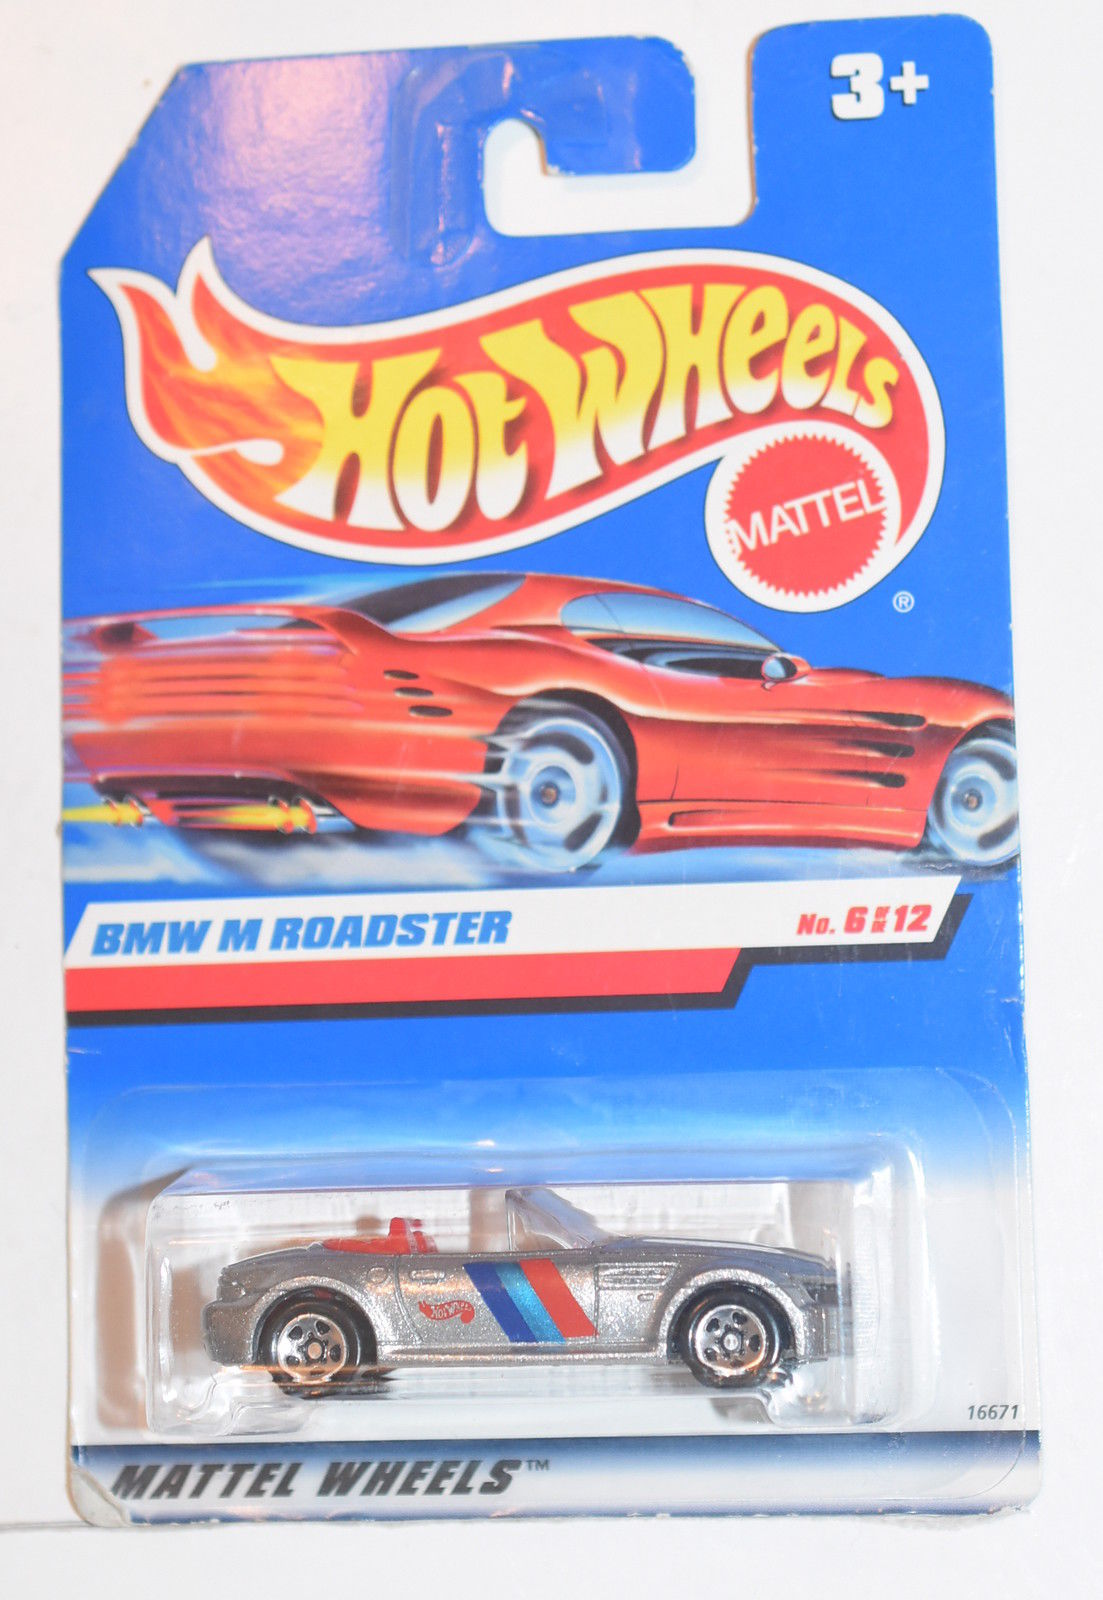 HOT WHEELS 1997 #6/12 BMW M ROADSTER INTERNATIONAL CARD